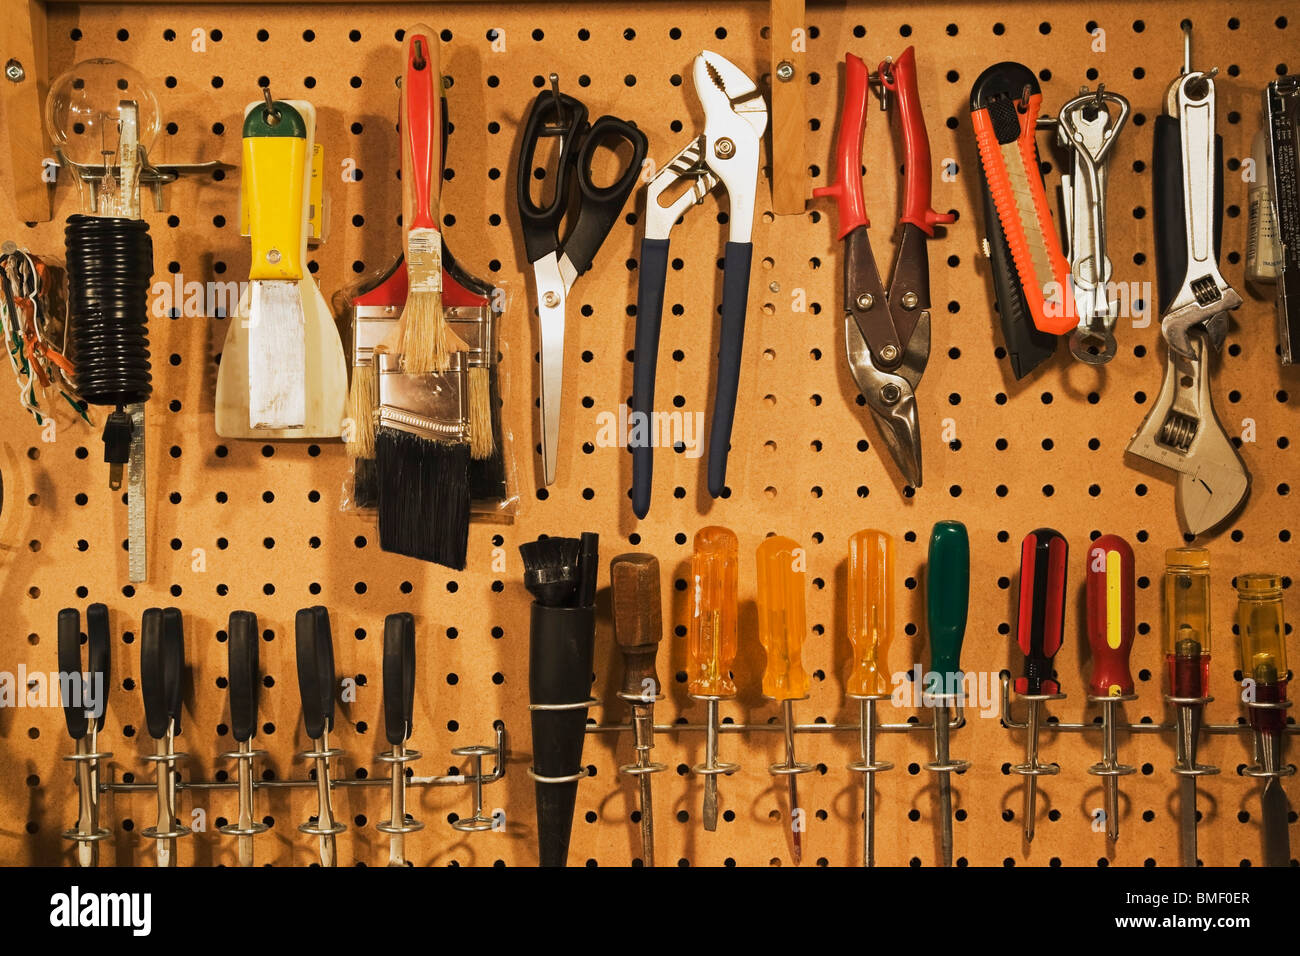 Assorted Workshop Tools On A Pegboard - Stock Image